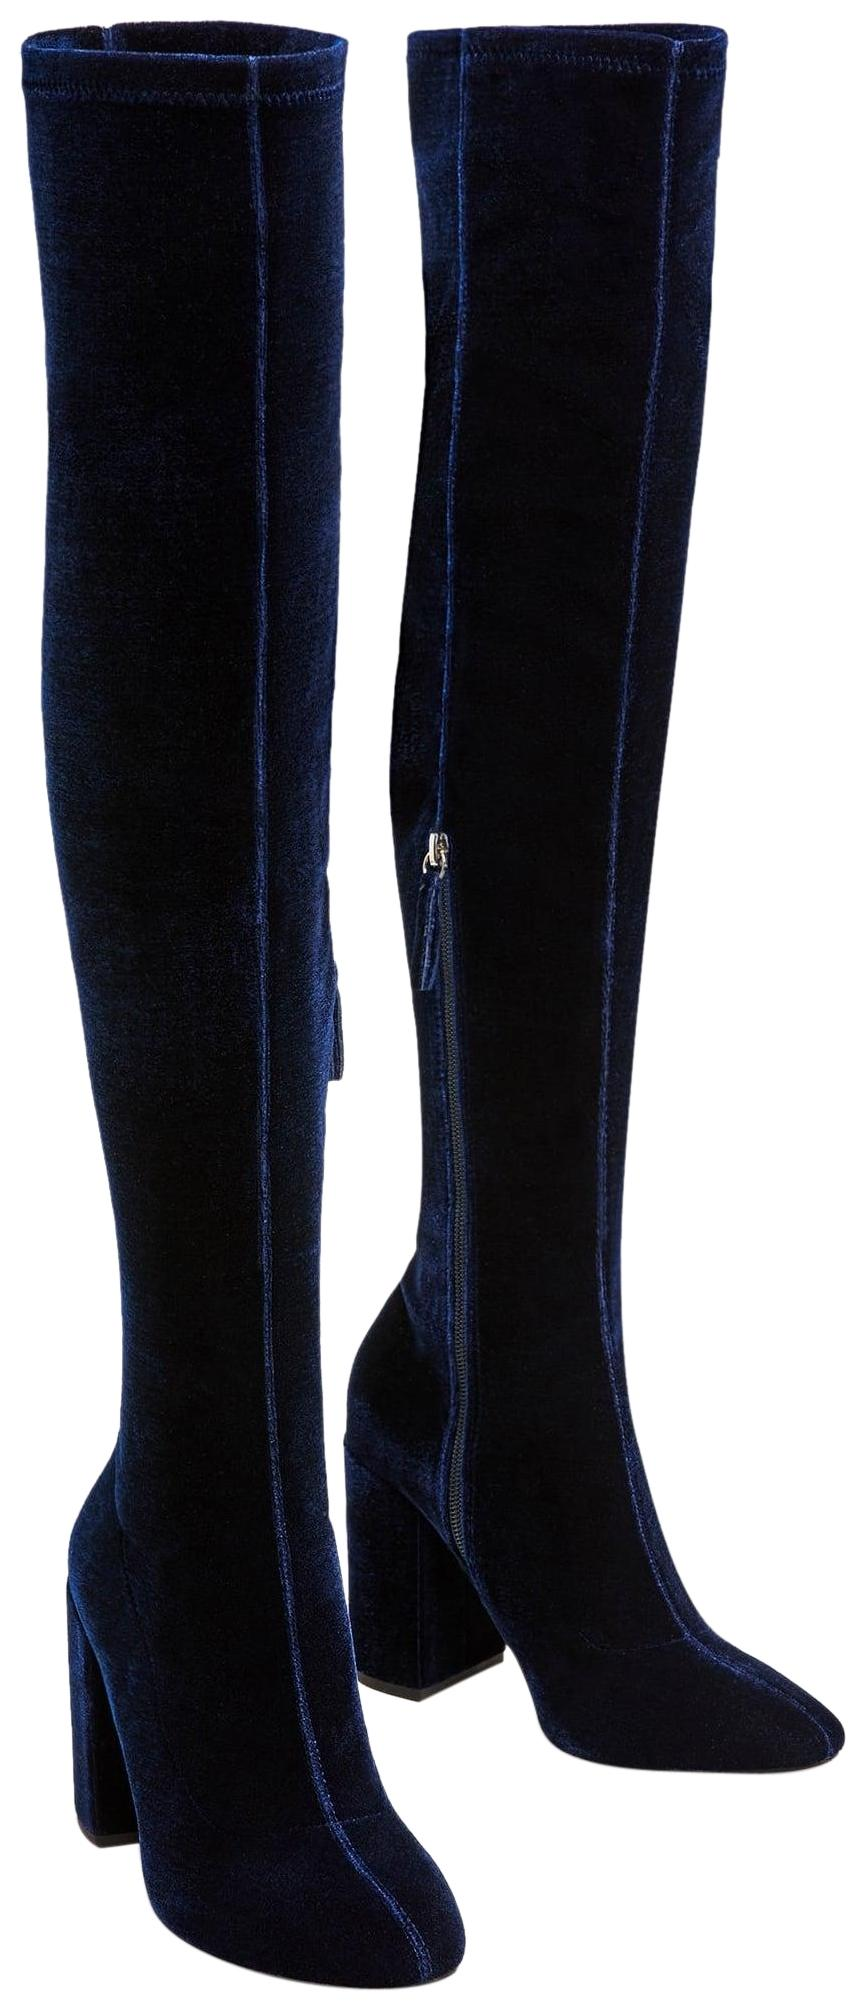 a4878faa4e6 Zara Blue Velvet Over The The The Knee High Heel Boots Booties Size US 5